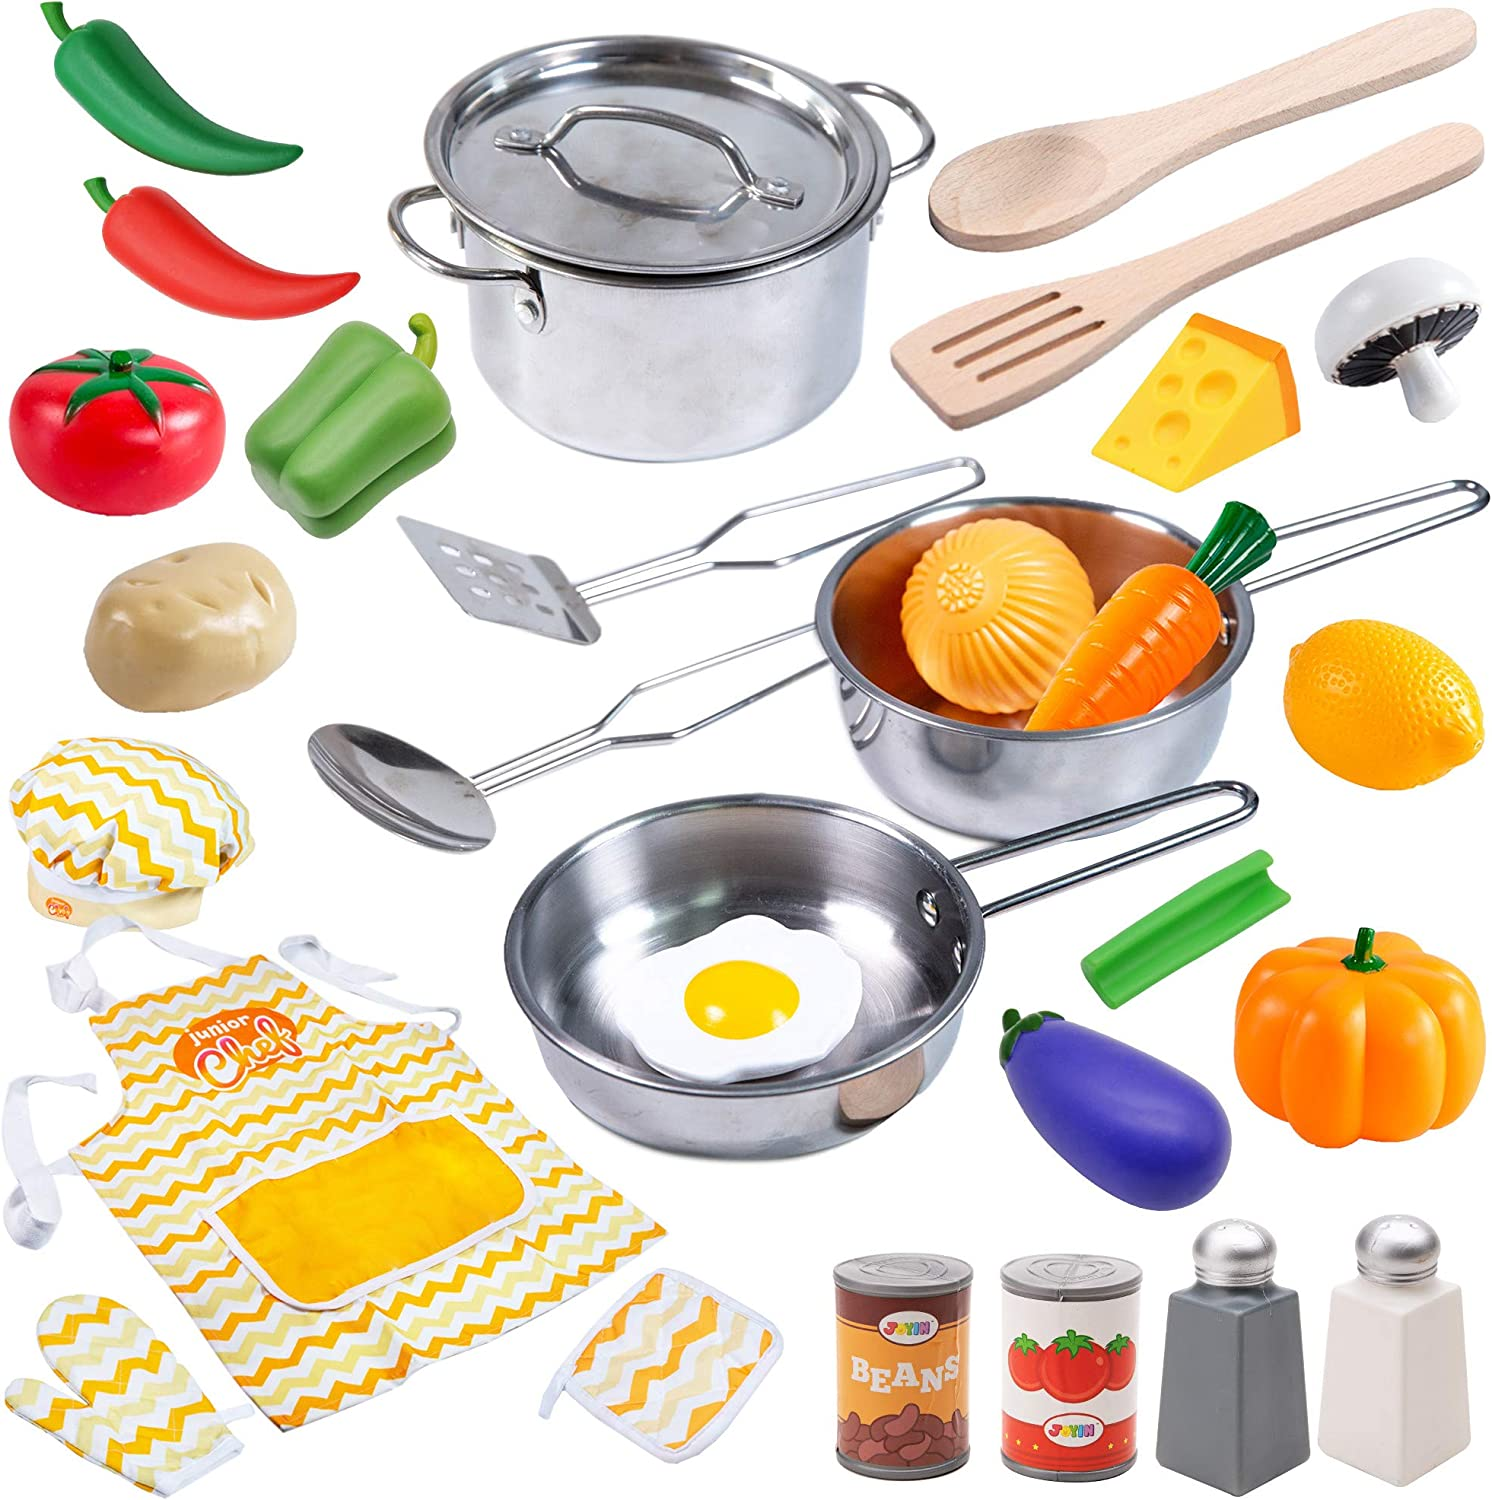 Amazon Com Joyin 29 Pcs Play Kitchen Accessories Kids Pots And Pans Playset Toy Kitchen Sets With Stainless Steel Cookware Set Cooking Utensils Apron Chef Hat And Grocery Play Food Sets Gift For Kids